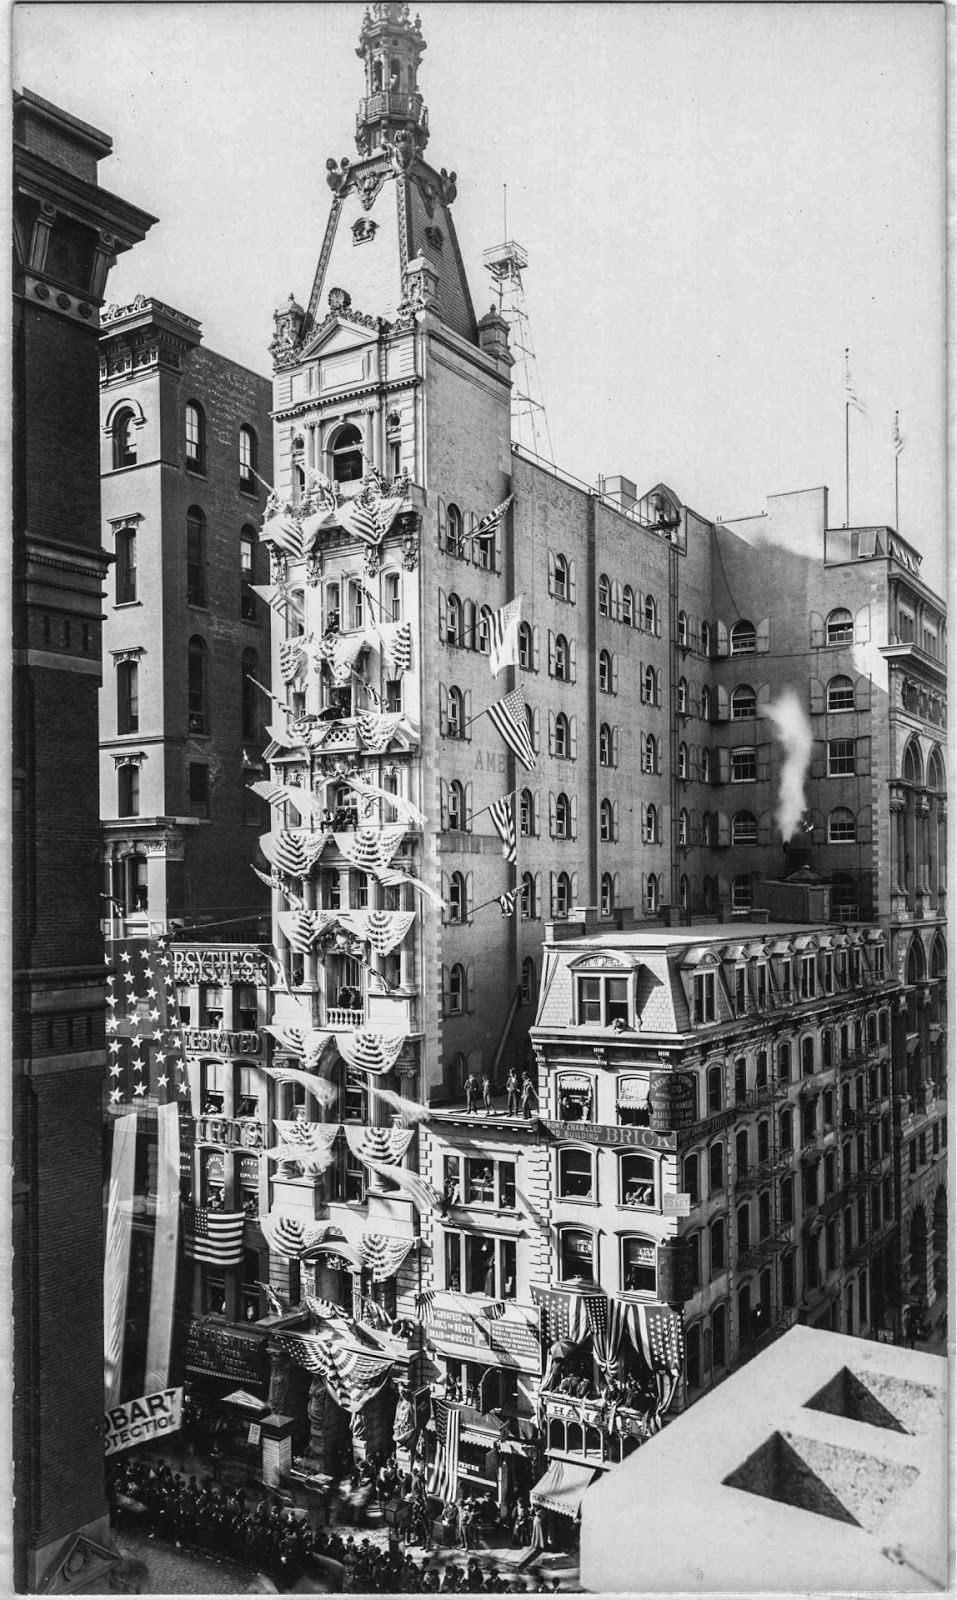 201-207 Broadway, Decorated for a Parade Promoting William McKinley and Garret Hobart for the Presidential Election, 1896.